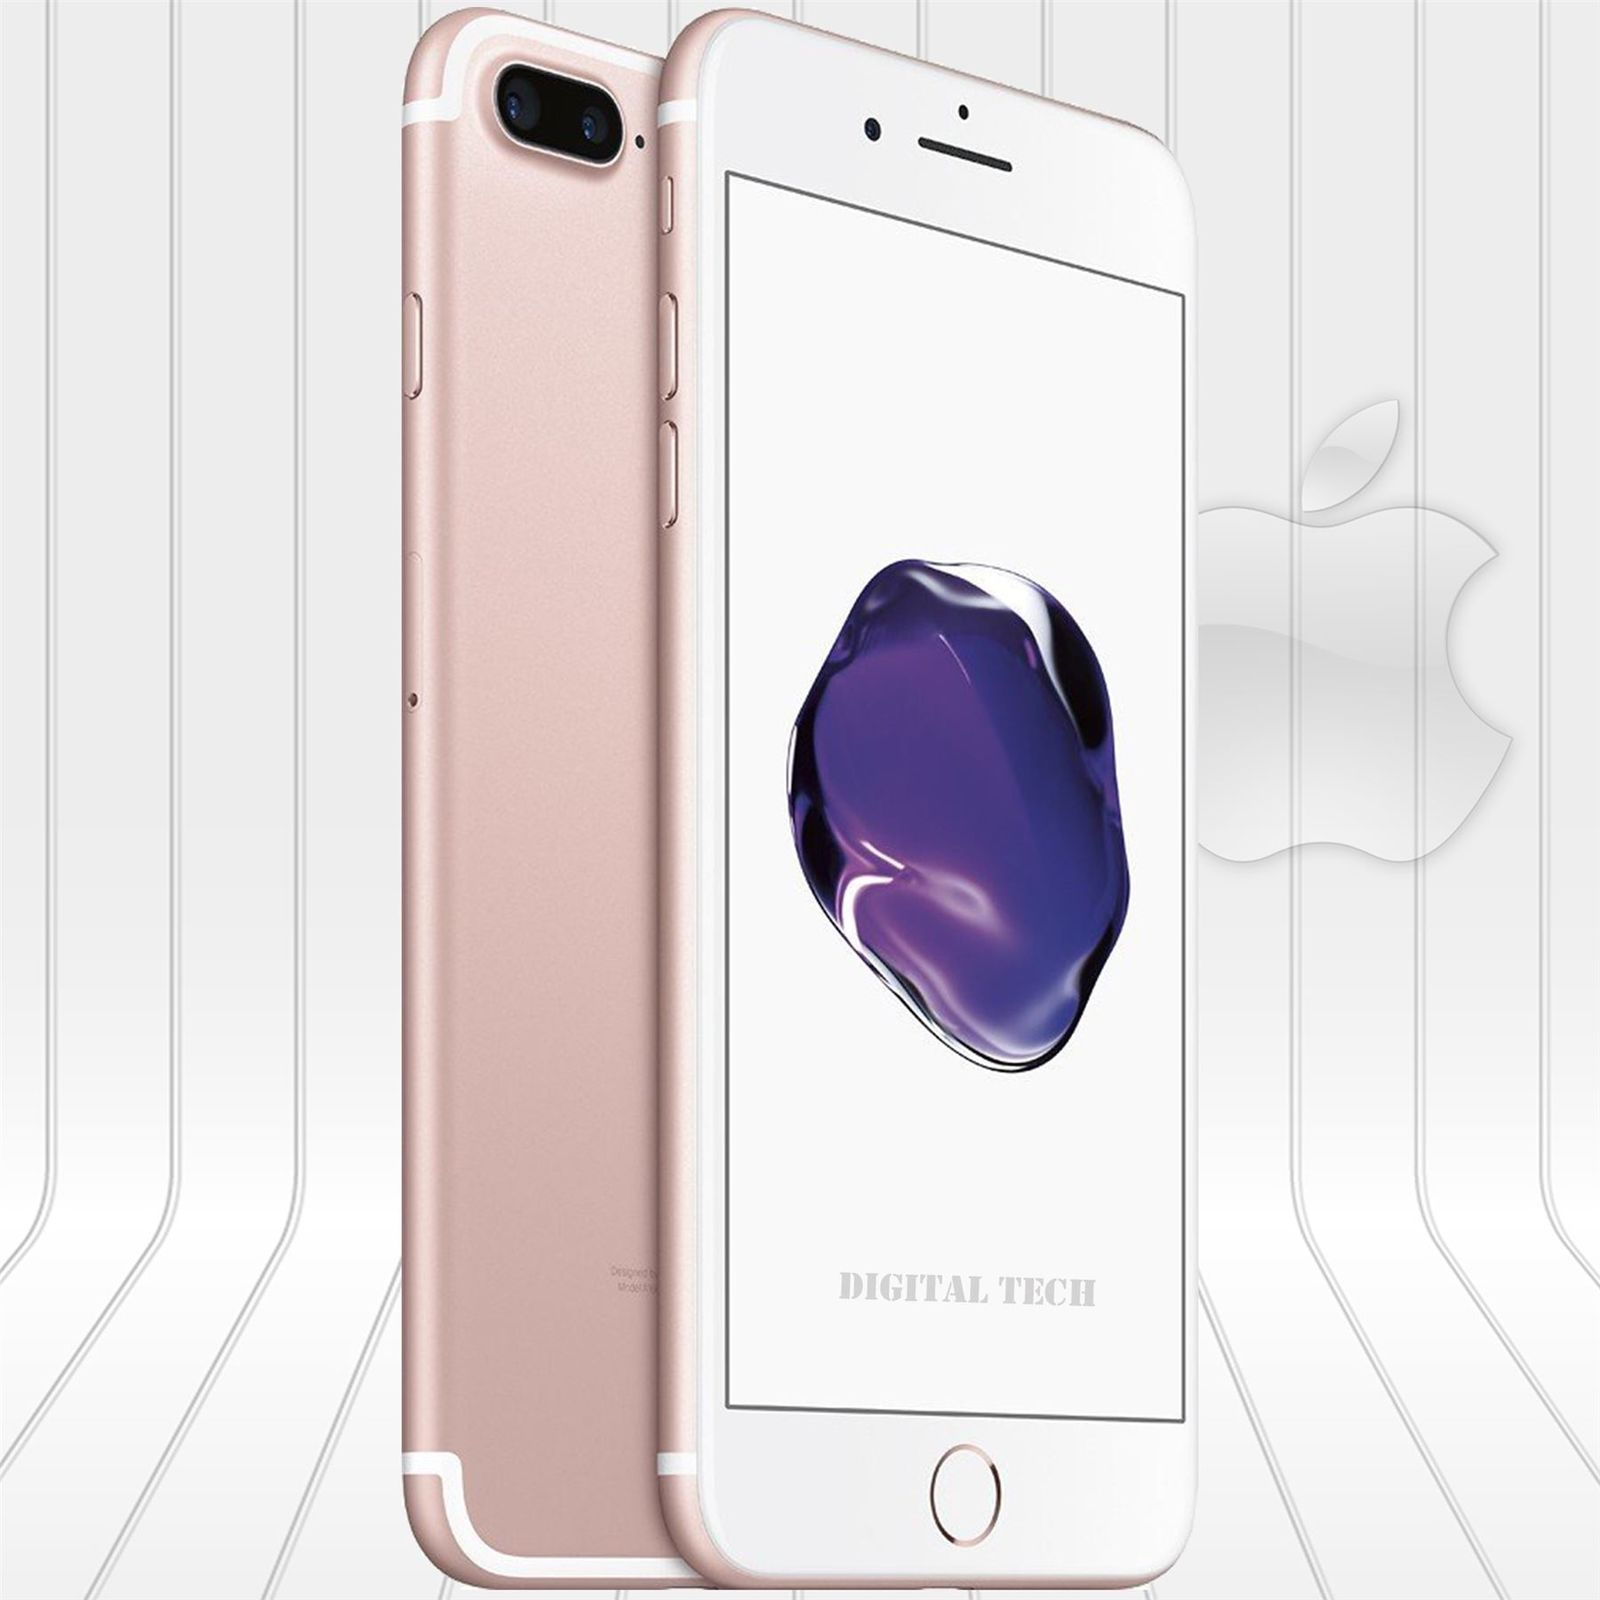 sell iphone 7 plus 128gb